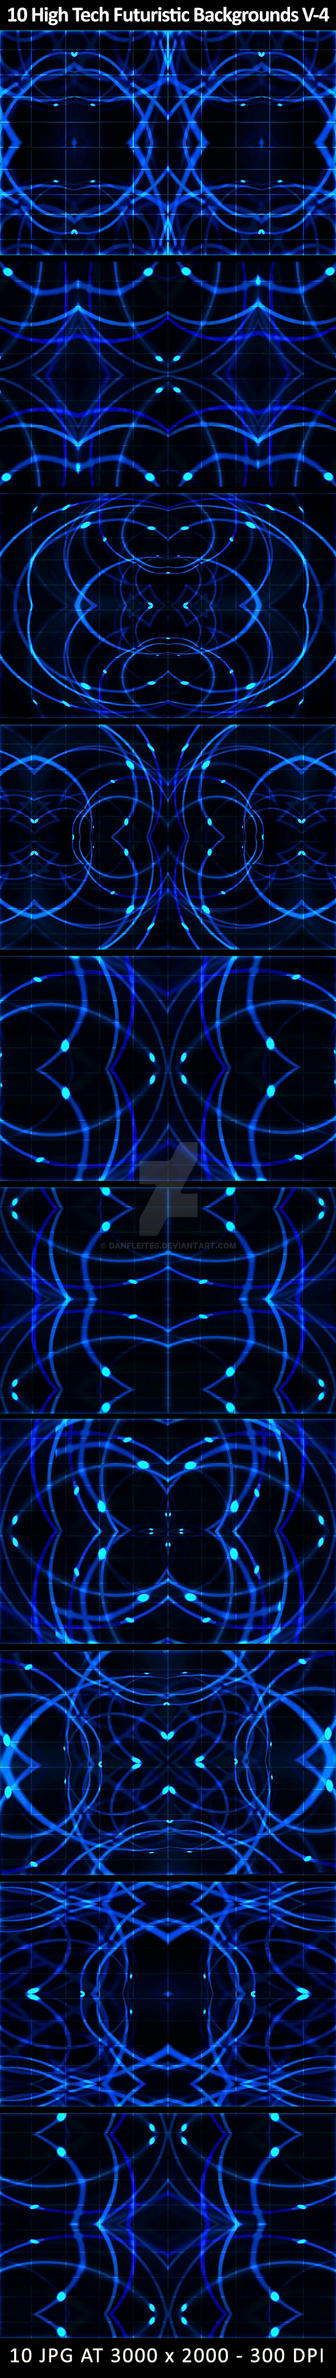 Preview 10 High Tech Futuristic Backgrounds by danfleites